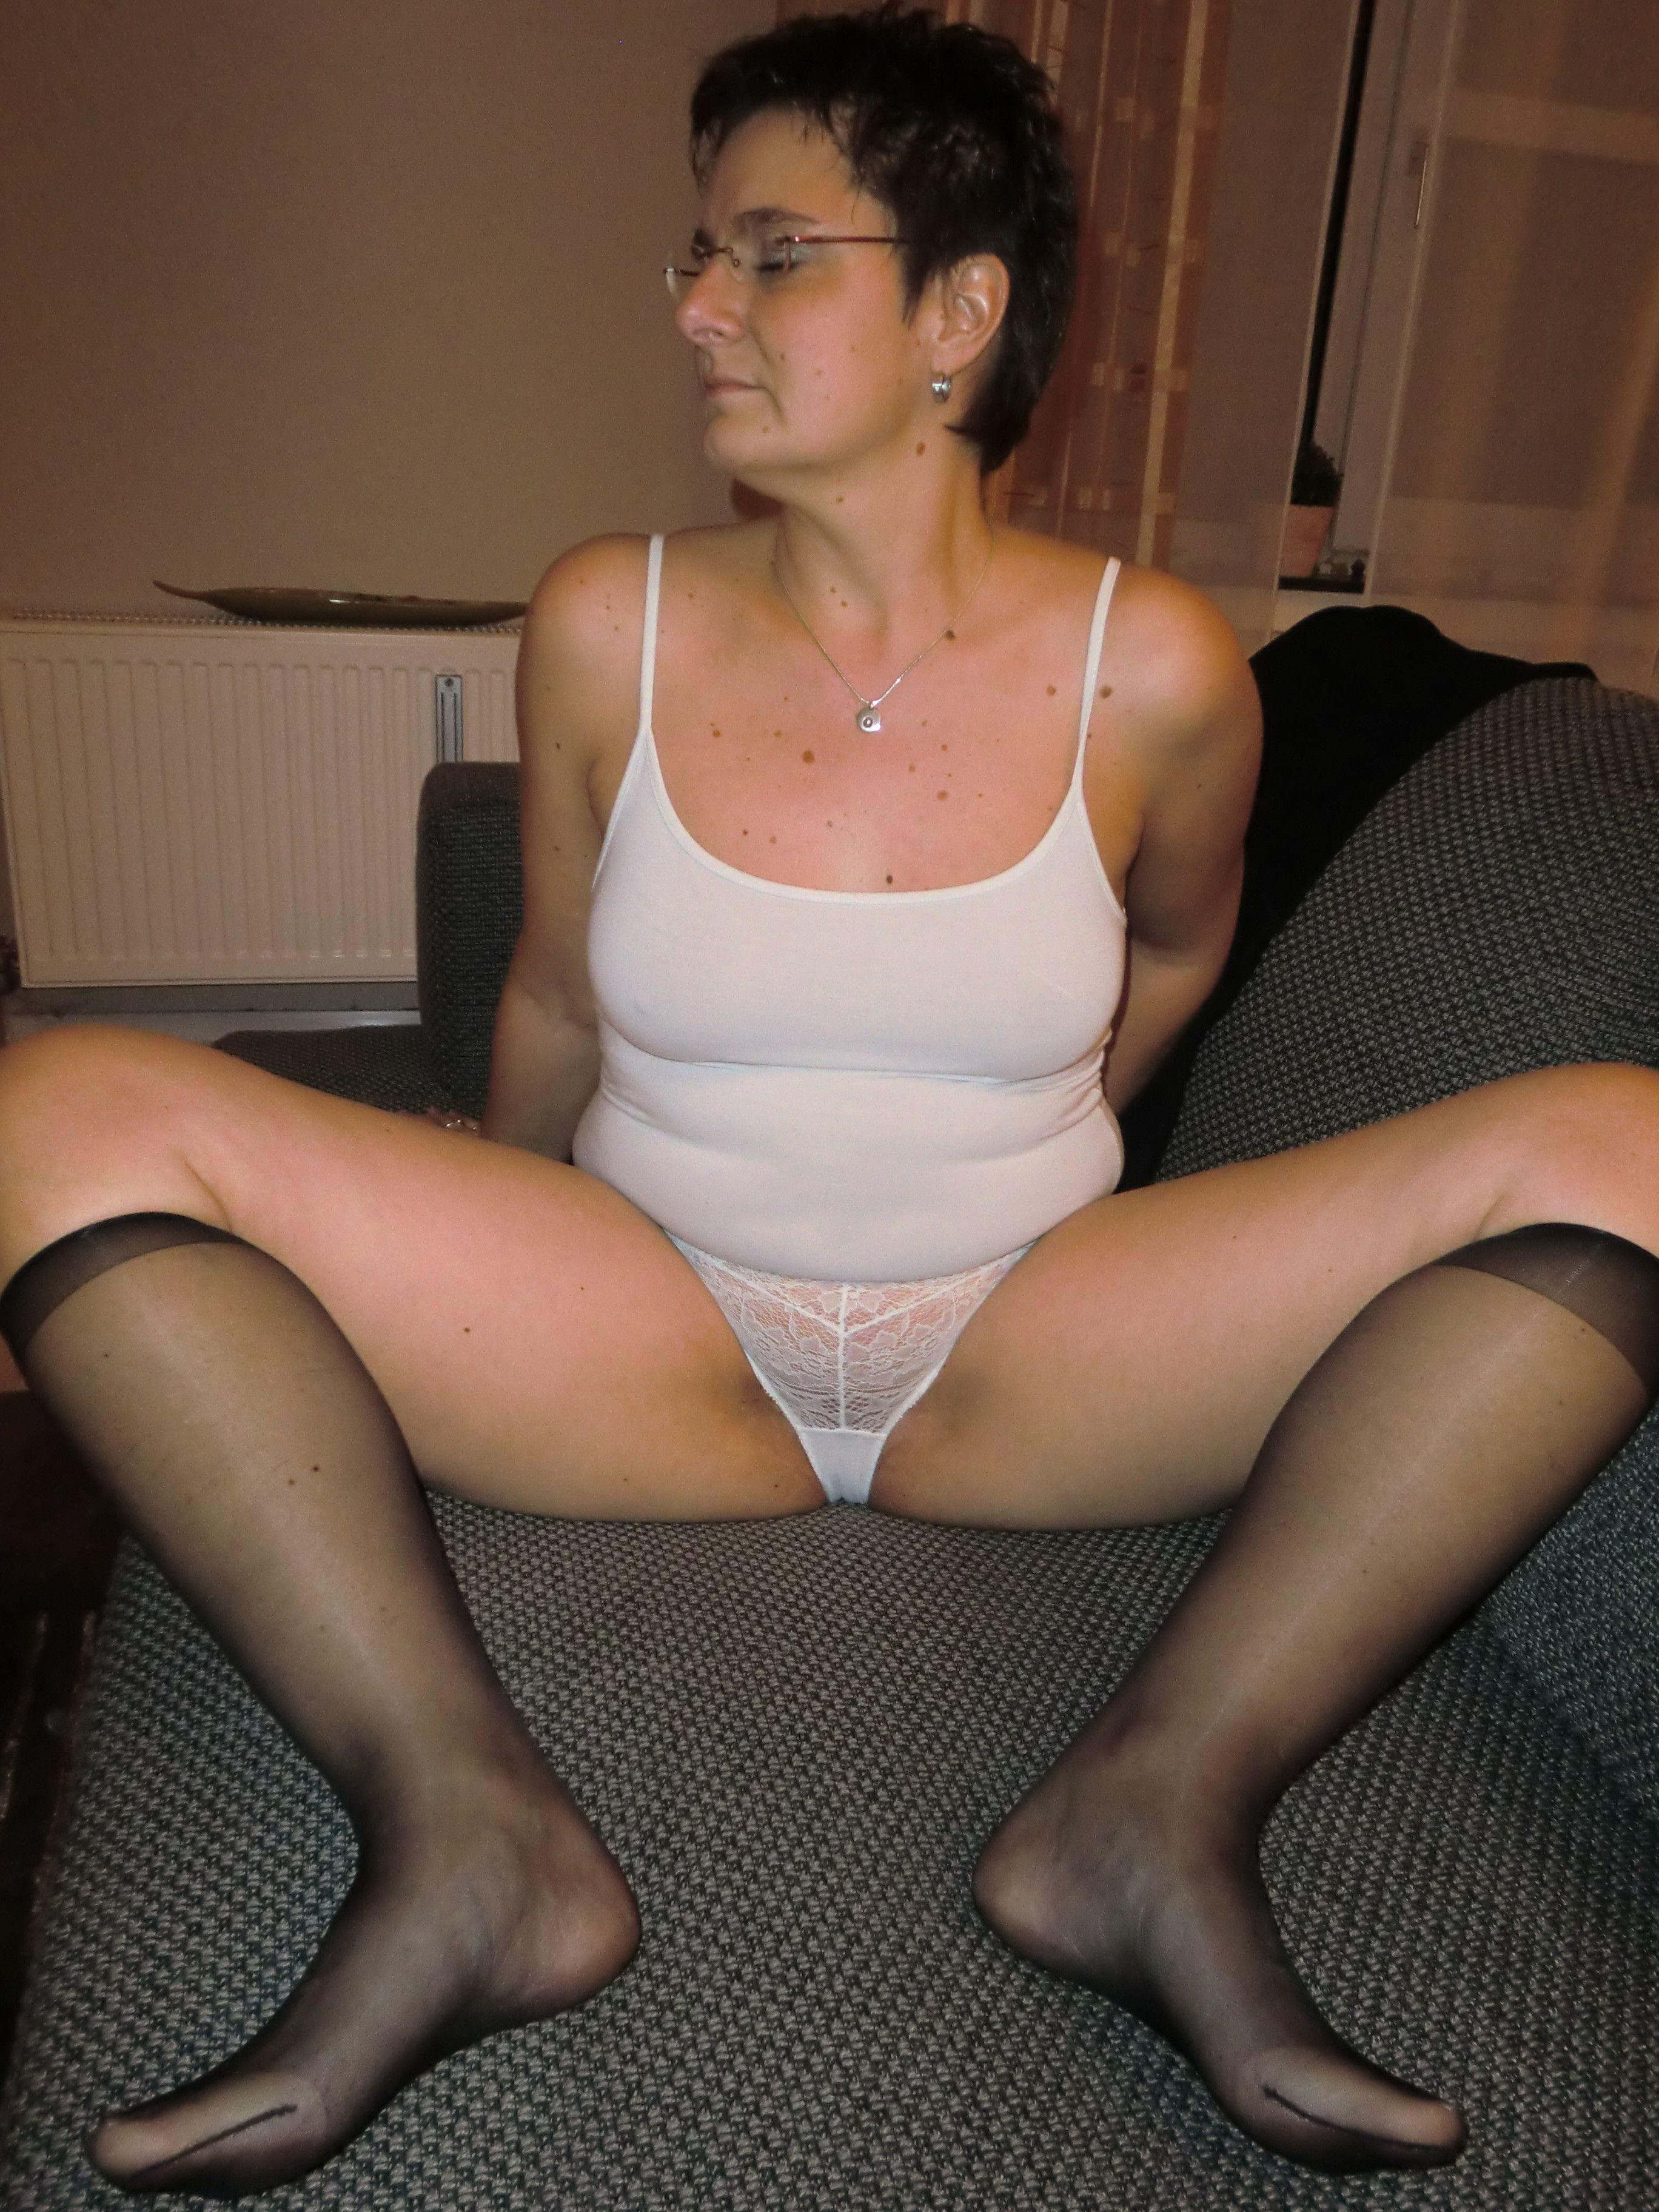 Amaterur Porno Online amateur dirty free pantie - pics and galleries.